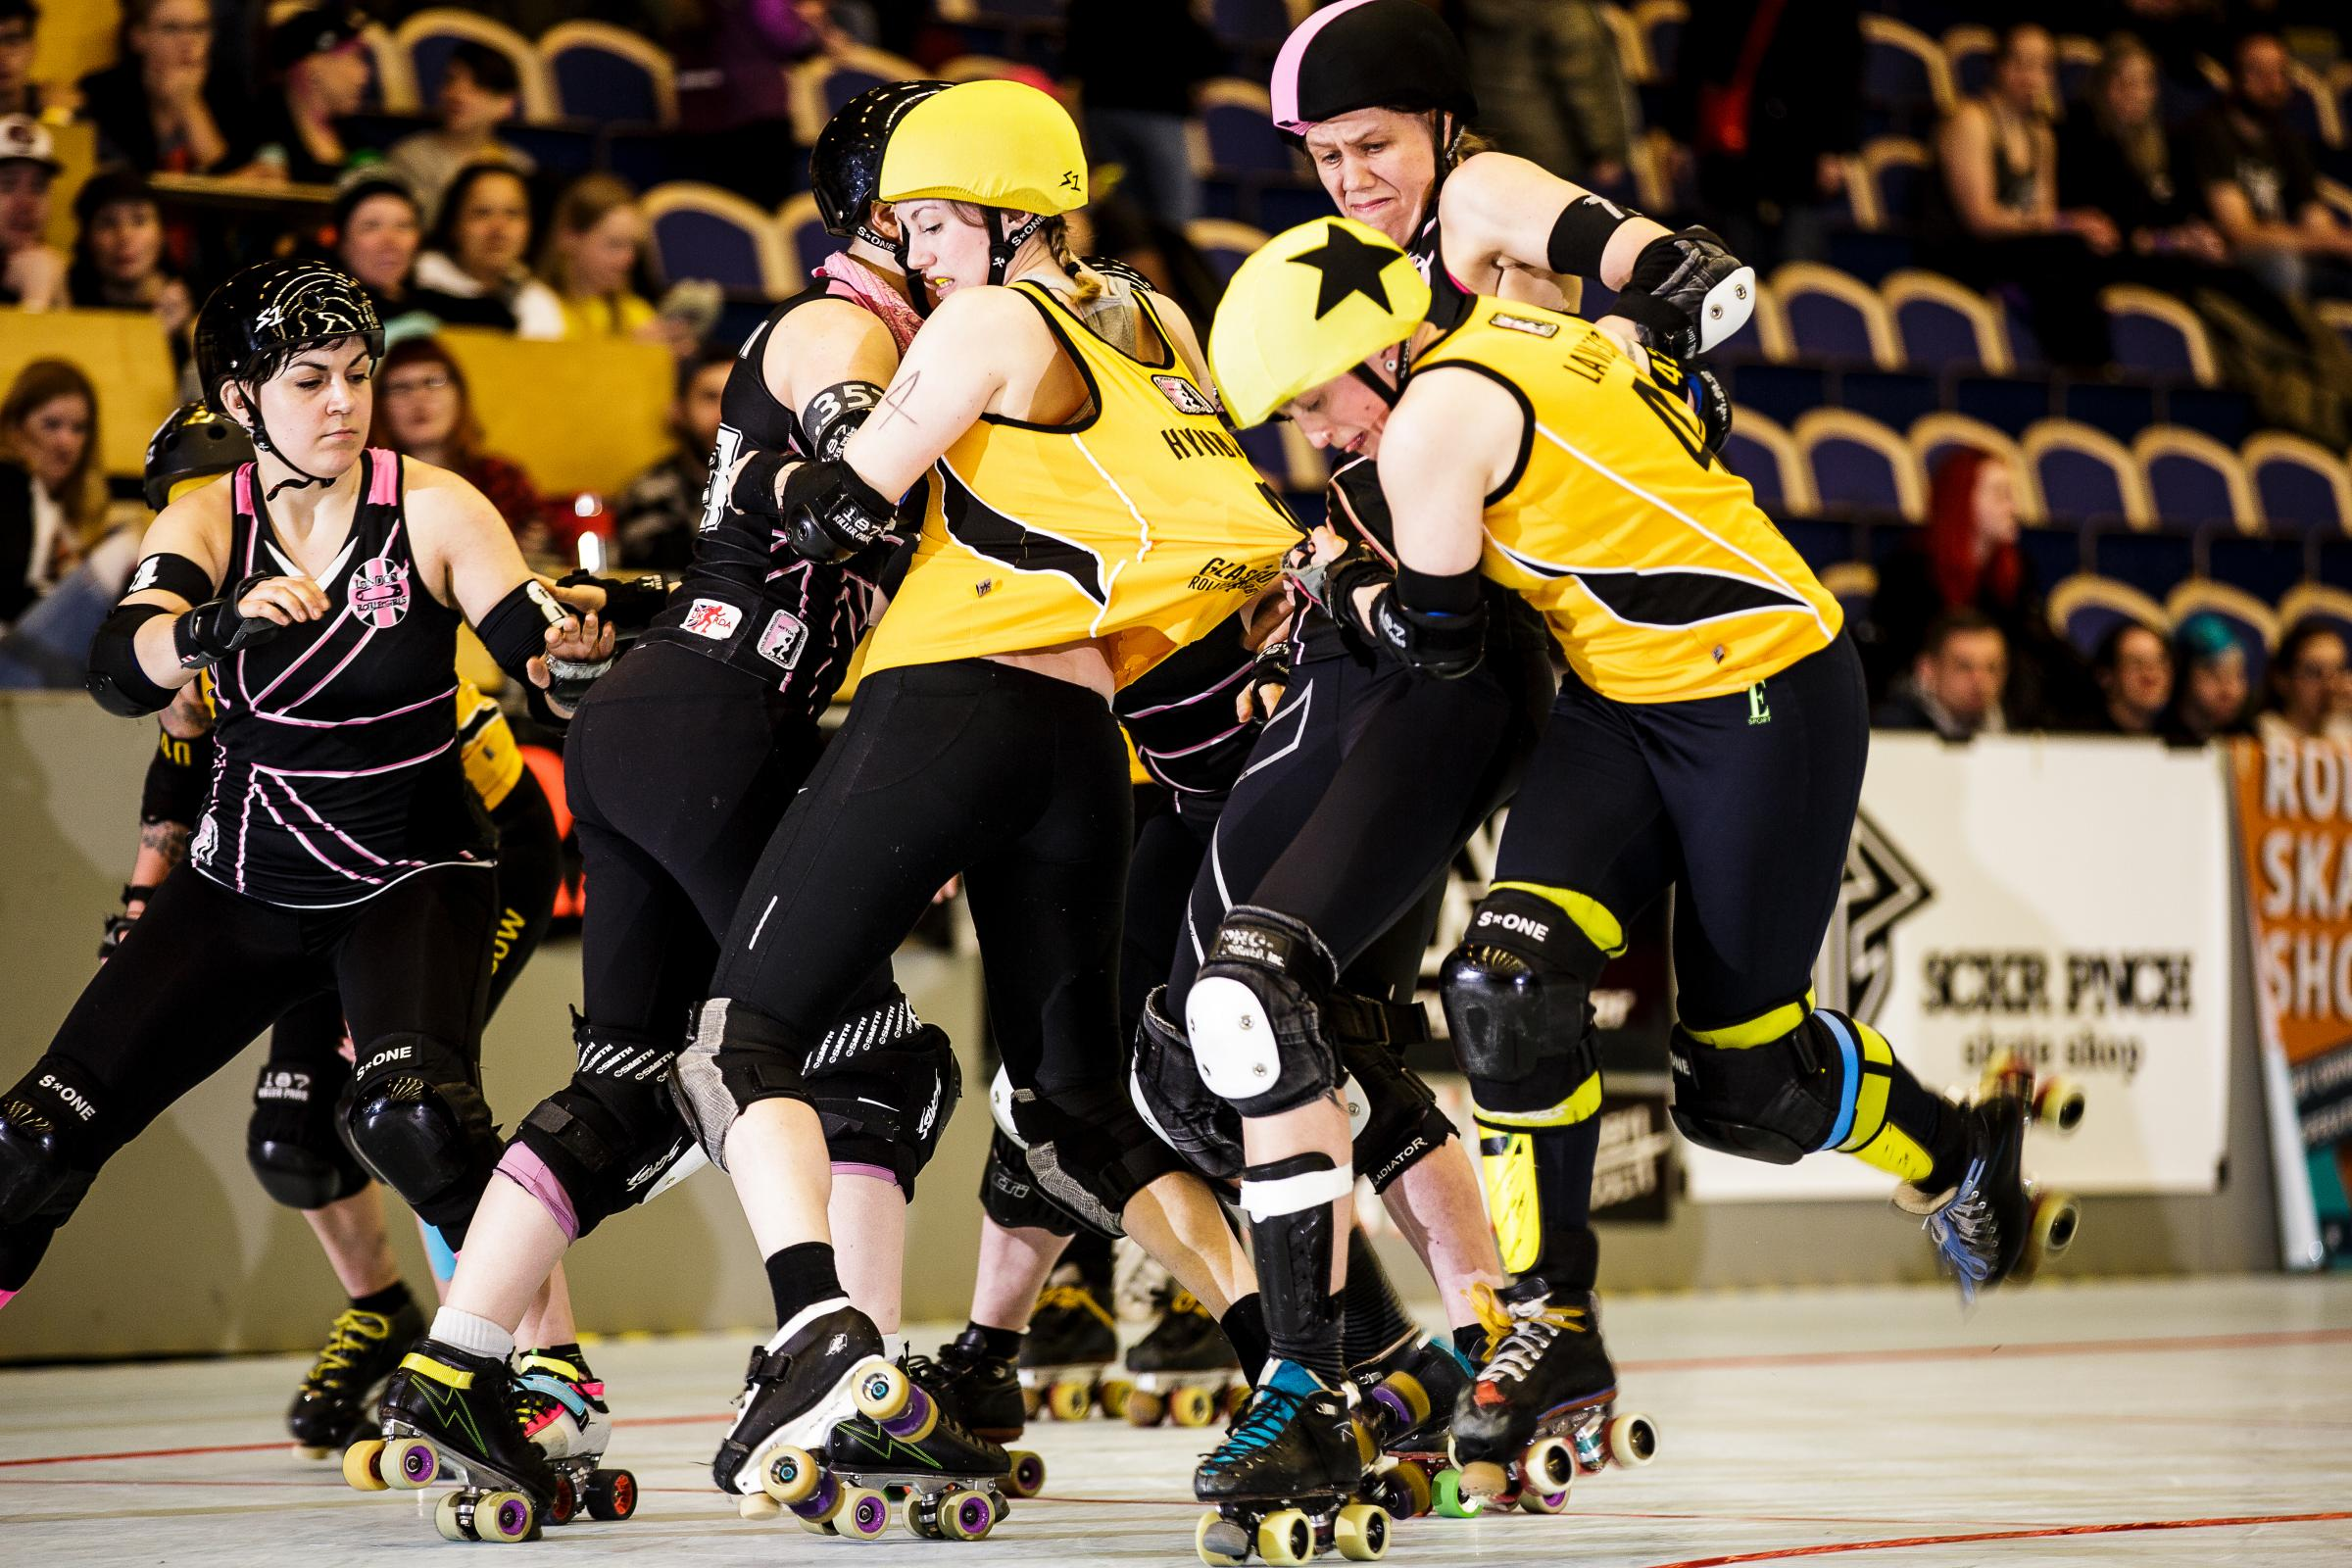 The Irn Bruisers go up against the London Rollers in Malmo las spring. Photograph: Peter Troest